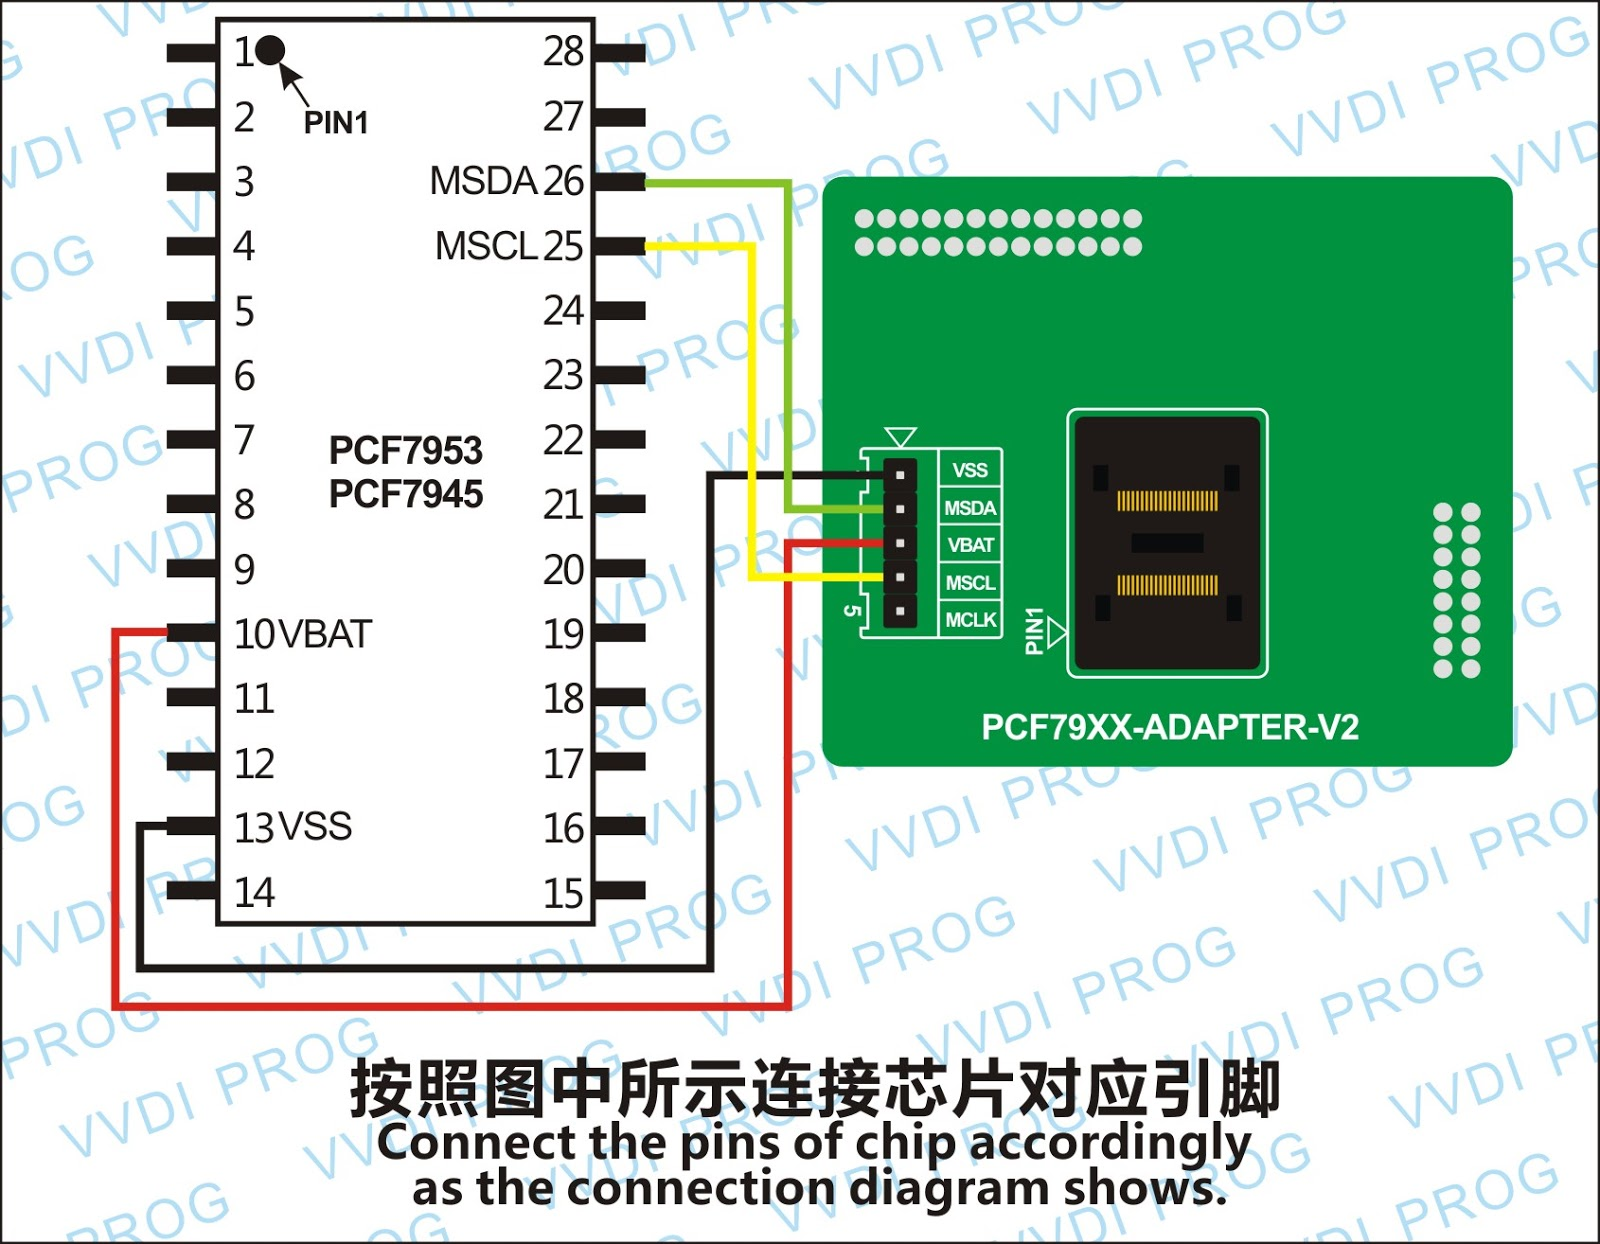 Obd port moreover lexus es obd connector location on car diagnostic - Obd Port Moreover Lexus Es Obd Connector Location On Car Diagnostic 24